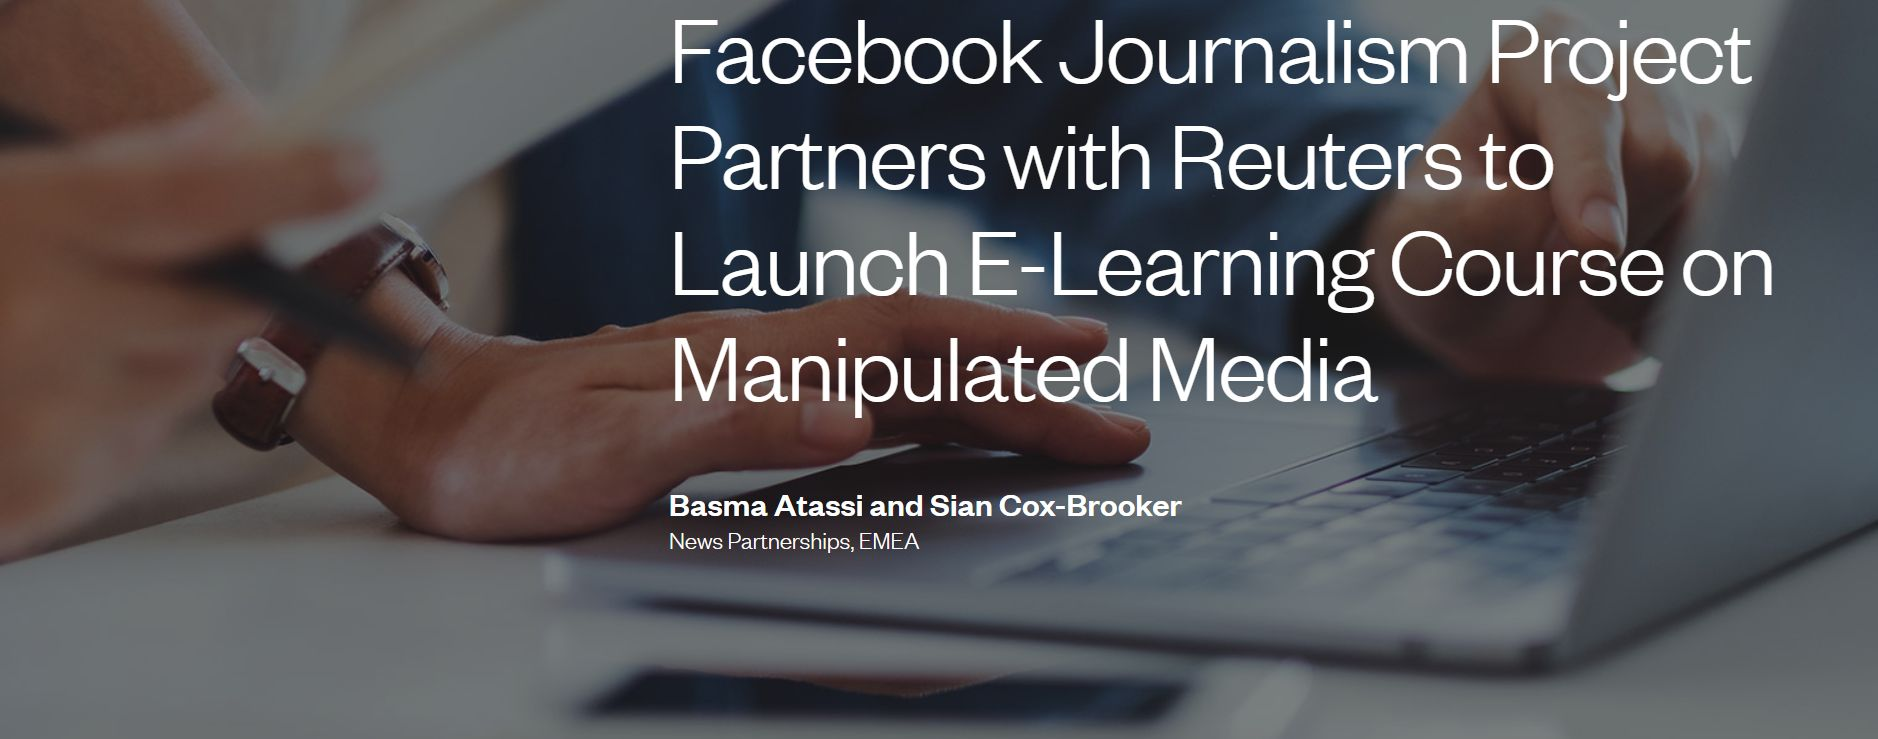 The editor of CCO Magazine would like to draw readers' attention that the Facebook Journalism Project Partners with Reuters to Launch E-Learning Course on Manipulated Media.